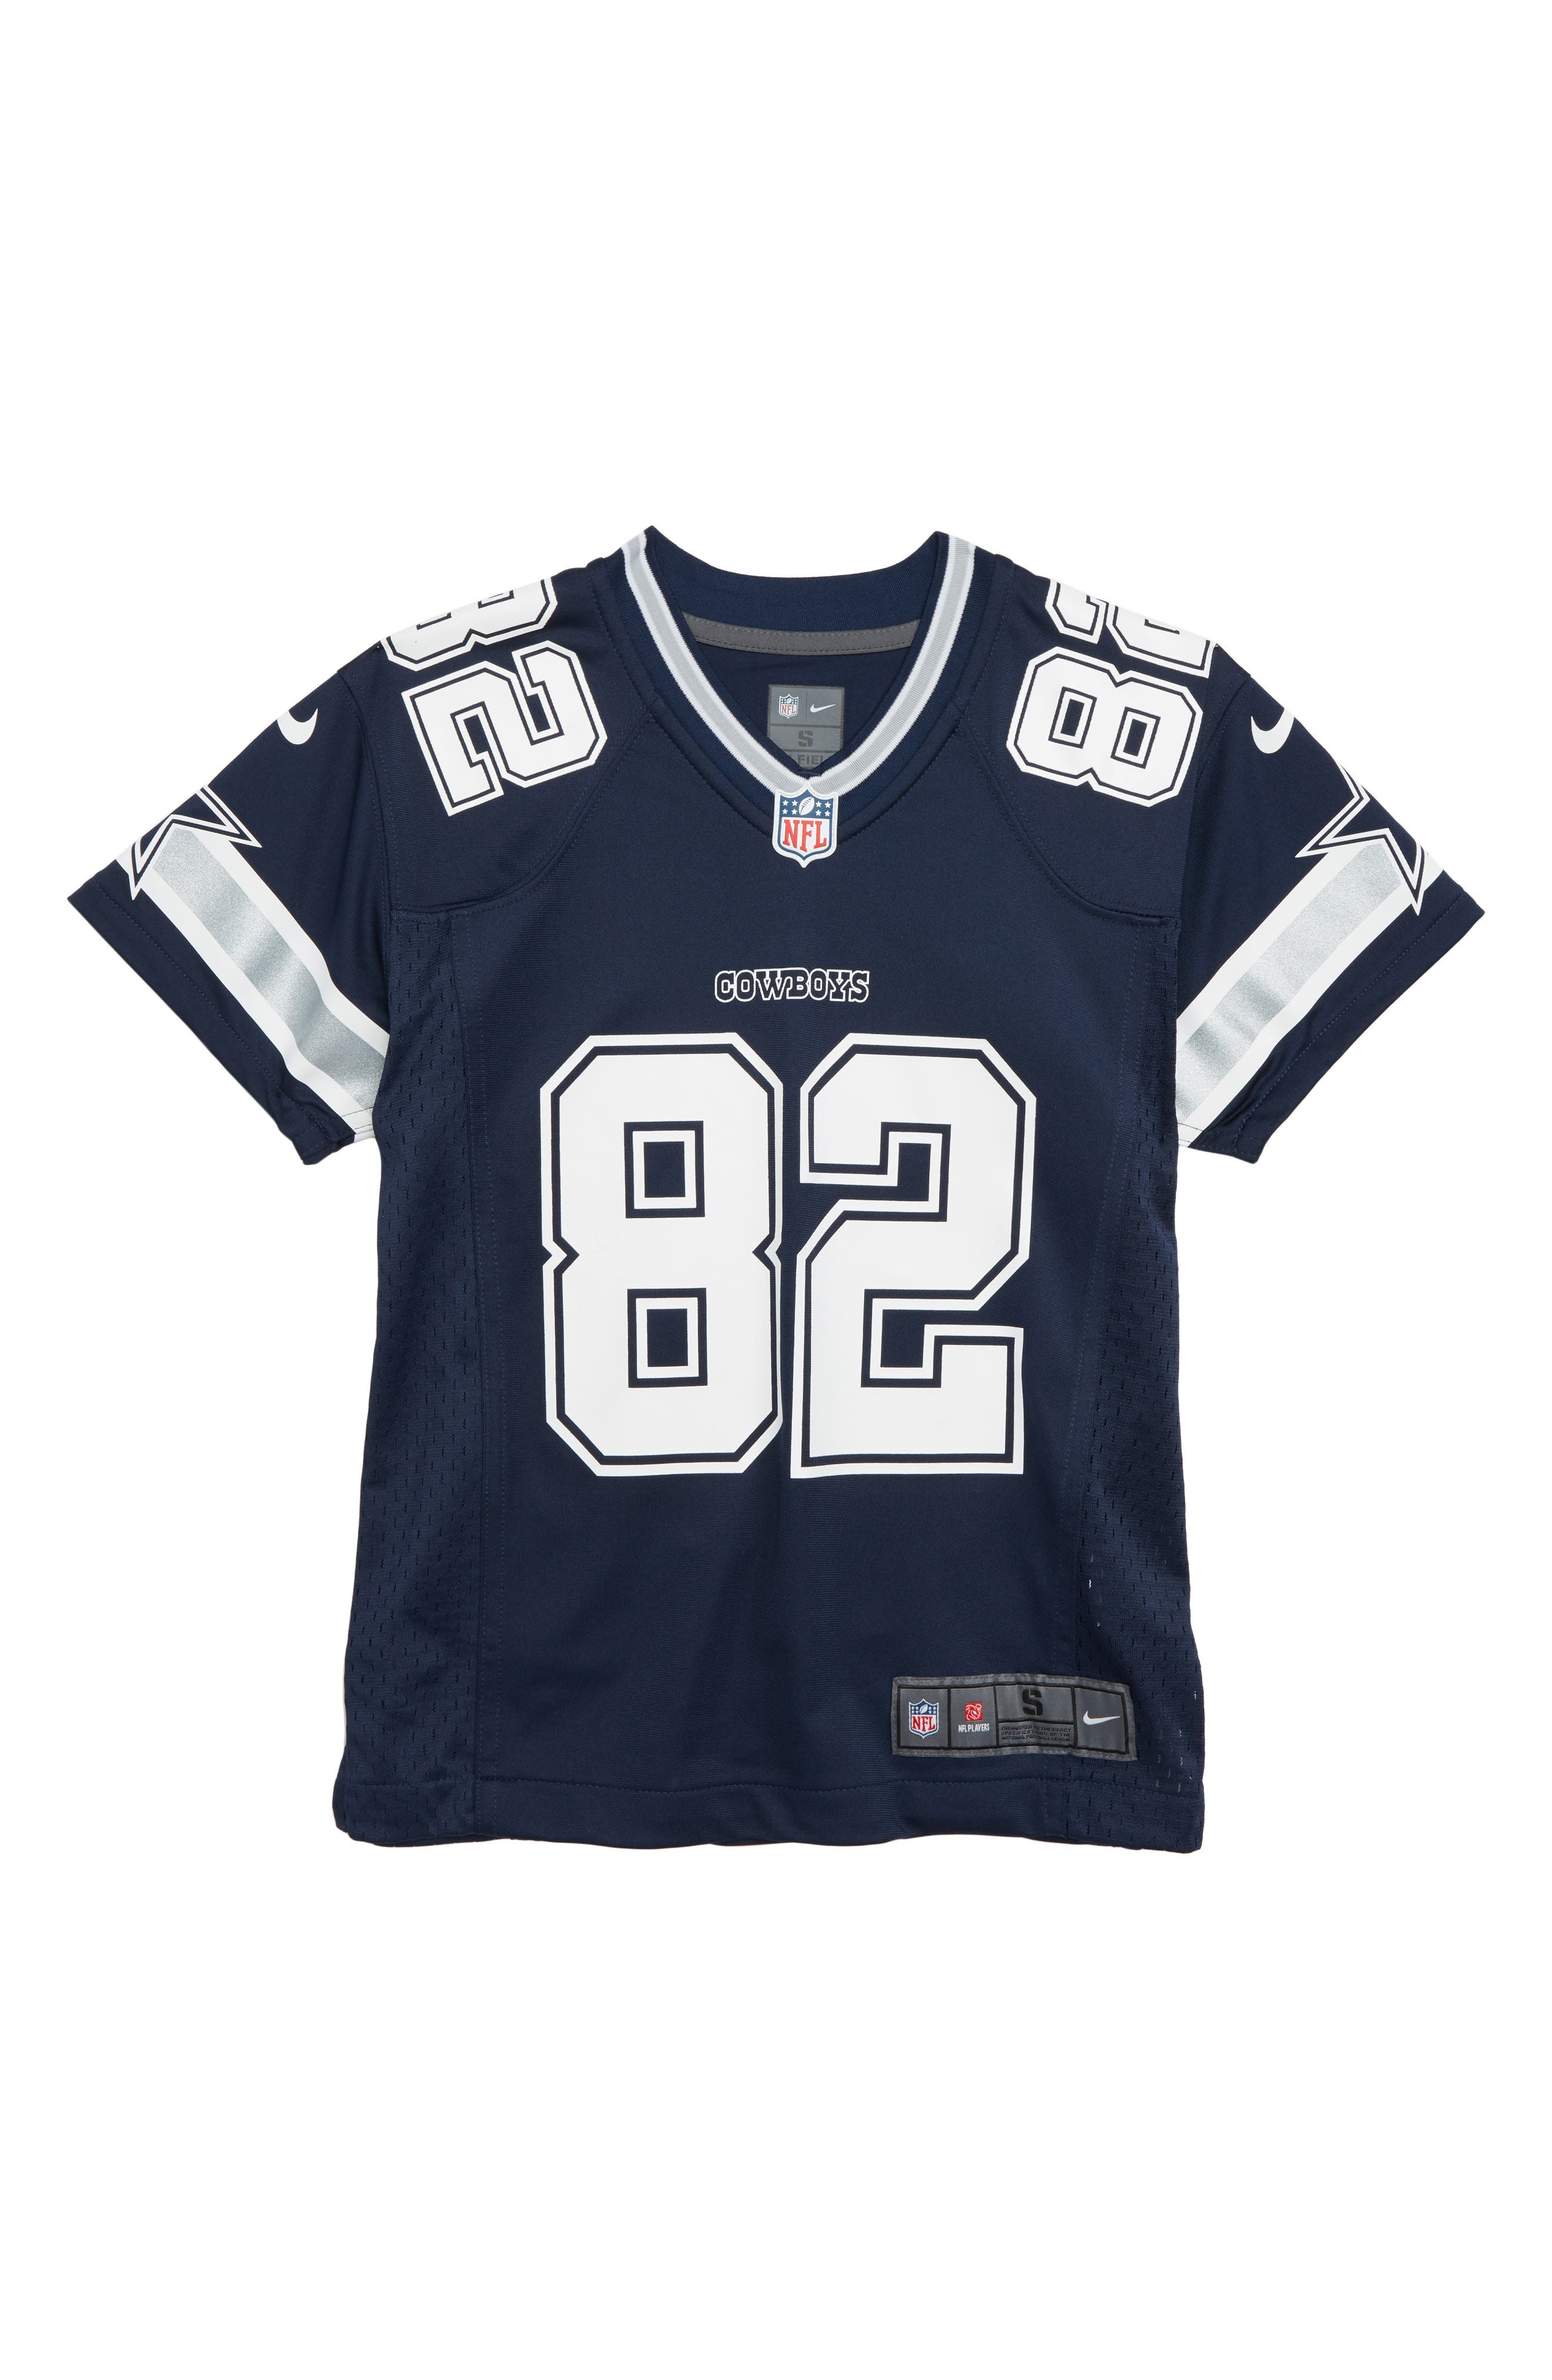 DALLAS COWBOYS,                             Nike NFL Dallas Cowboys - Jason Witten Jersey,                             Main thumbnail 1, color,                             410